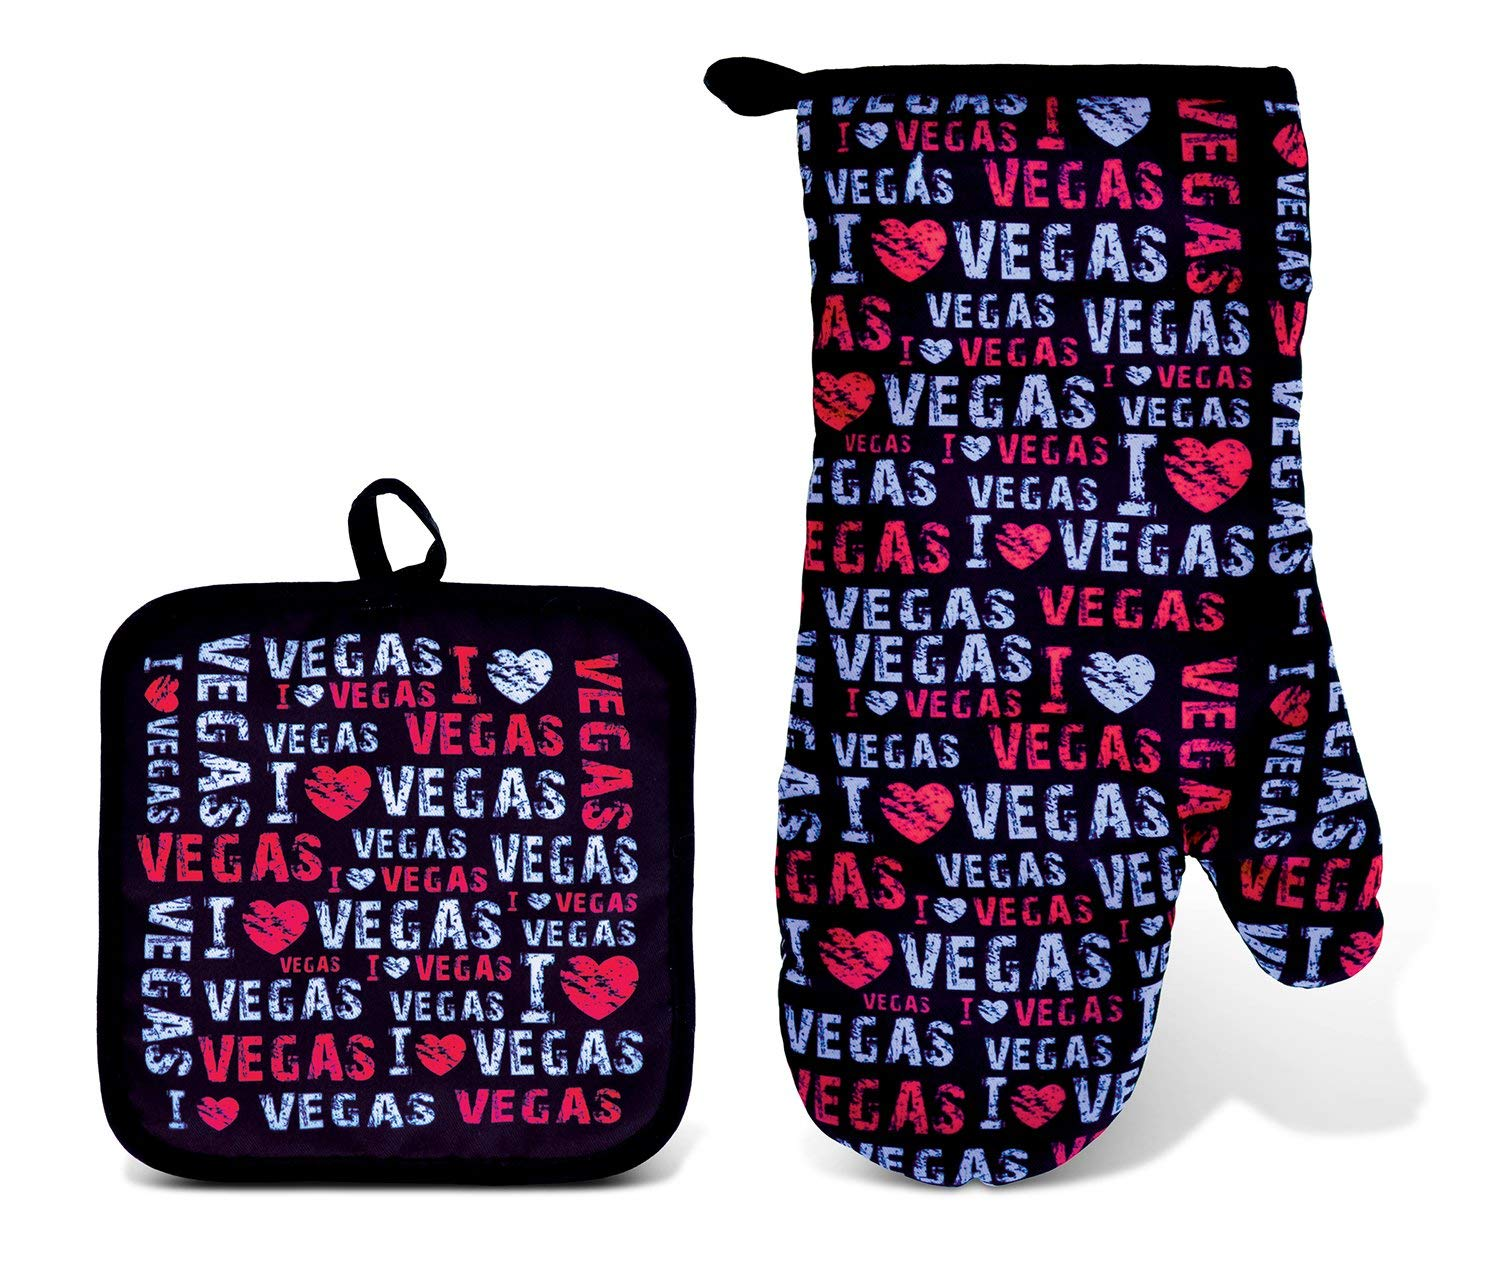 Puzzled Pot Holder & Oven Mitt Set I Love Vegas Kitchen Accessory Potholder Heat Resistant Non-Slip Grip Cooking Glove Machine Washable Baking Grilling BBQ Decorative Novelty Polyester Mitten Pink